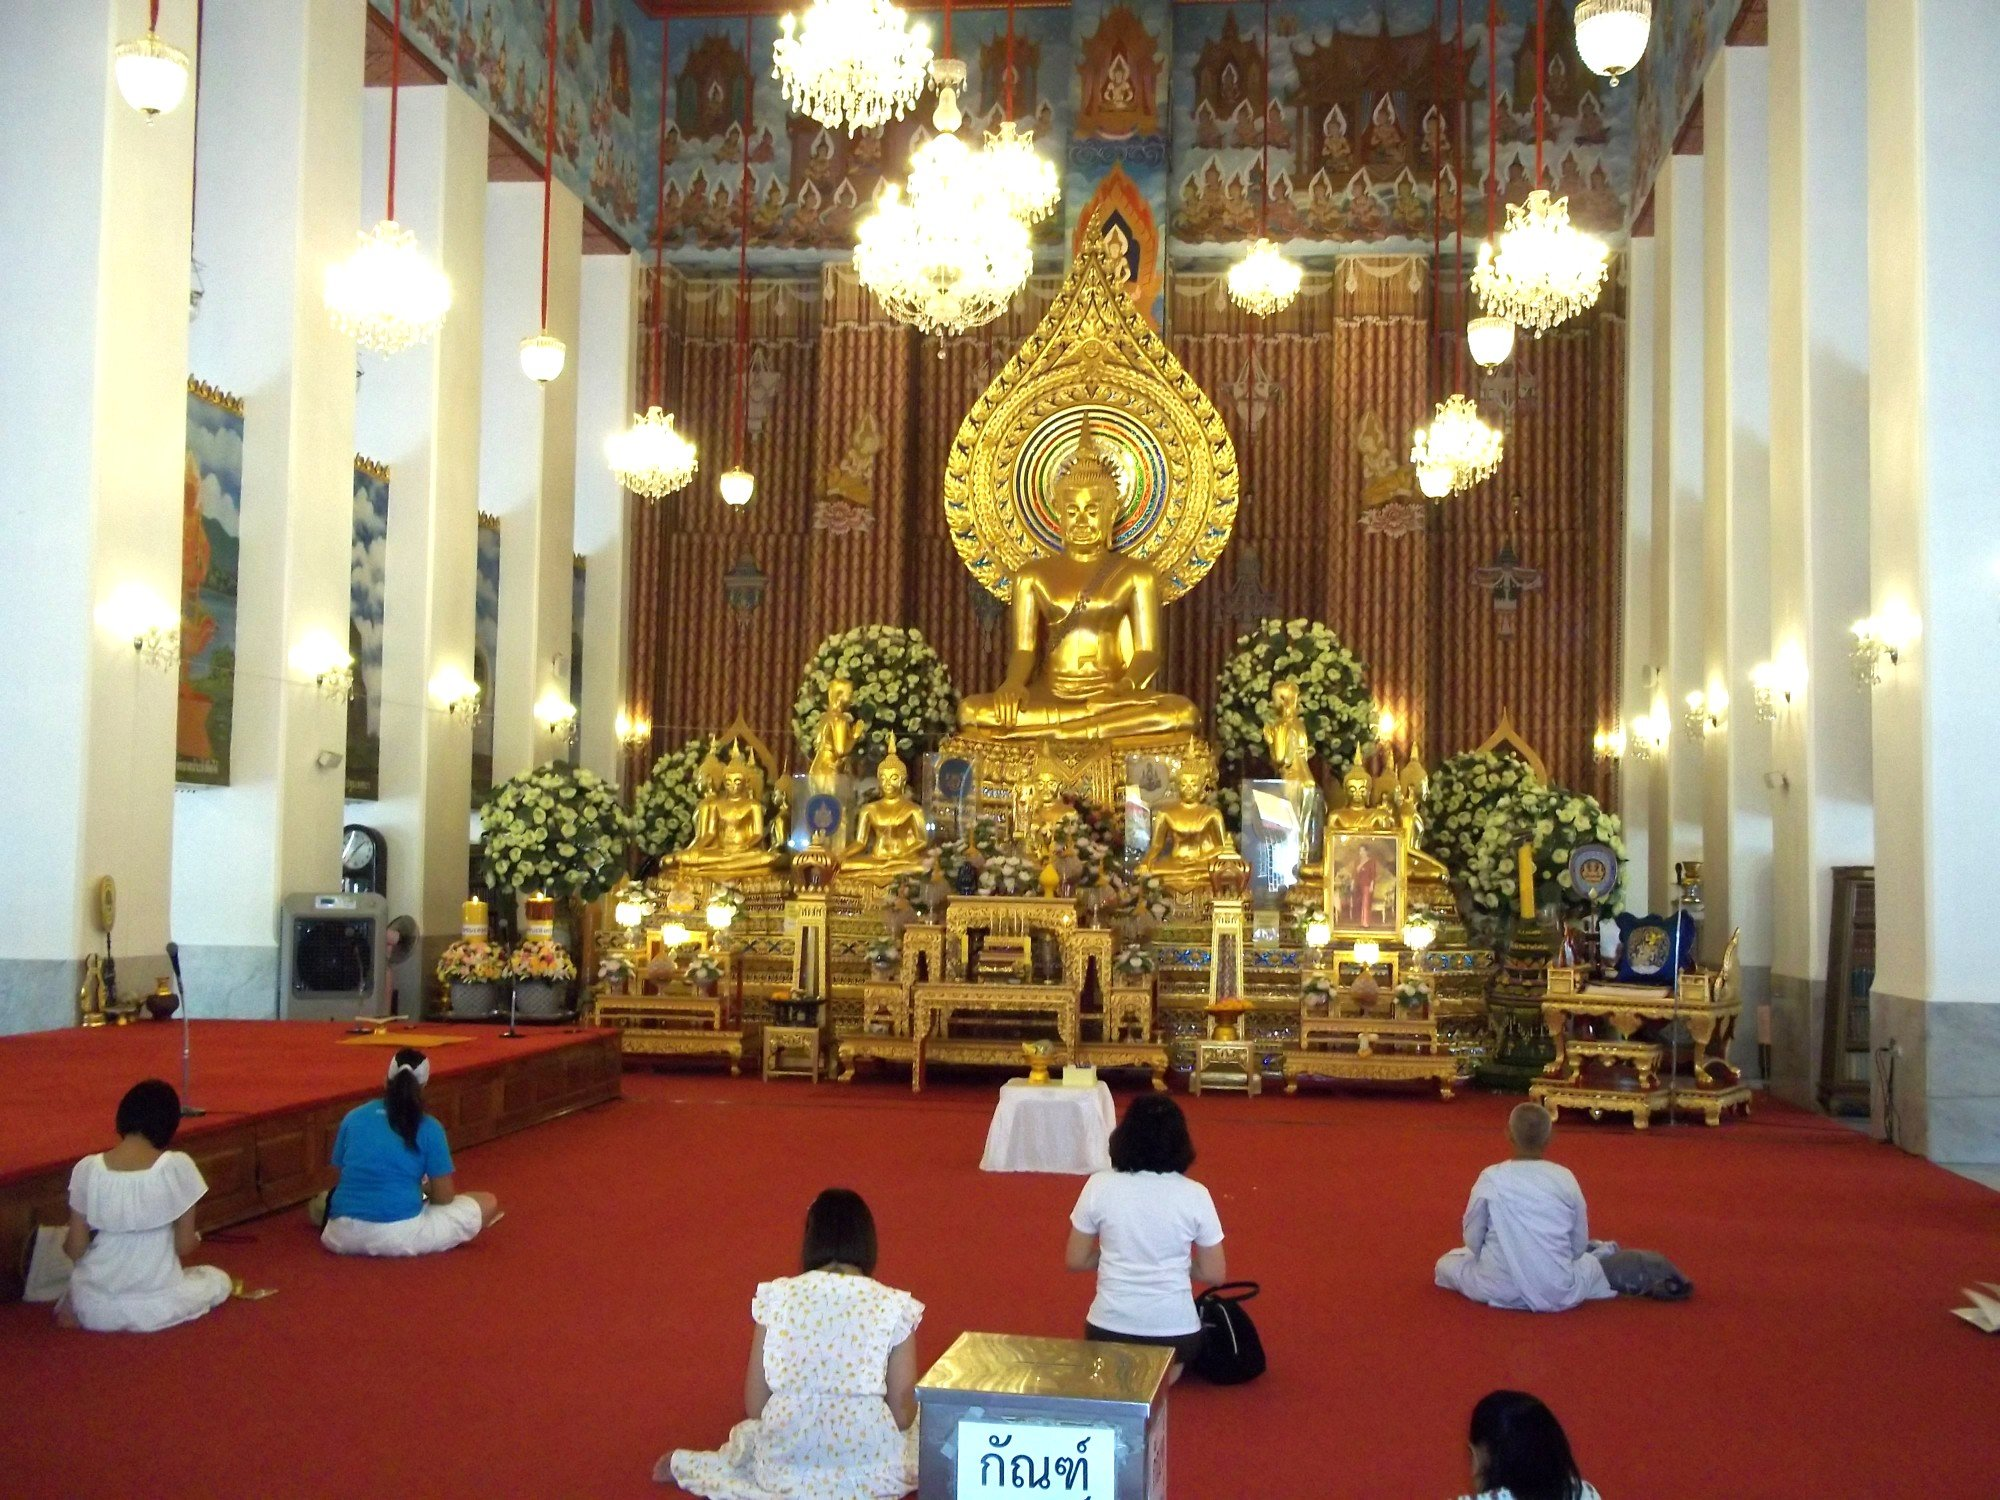 Inside the ordination hall at Wat Chana Songkhram